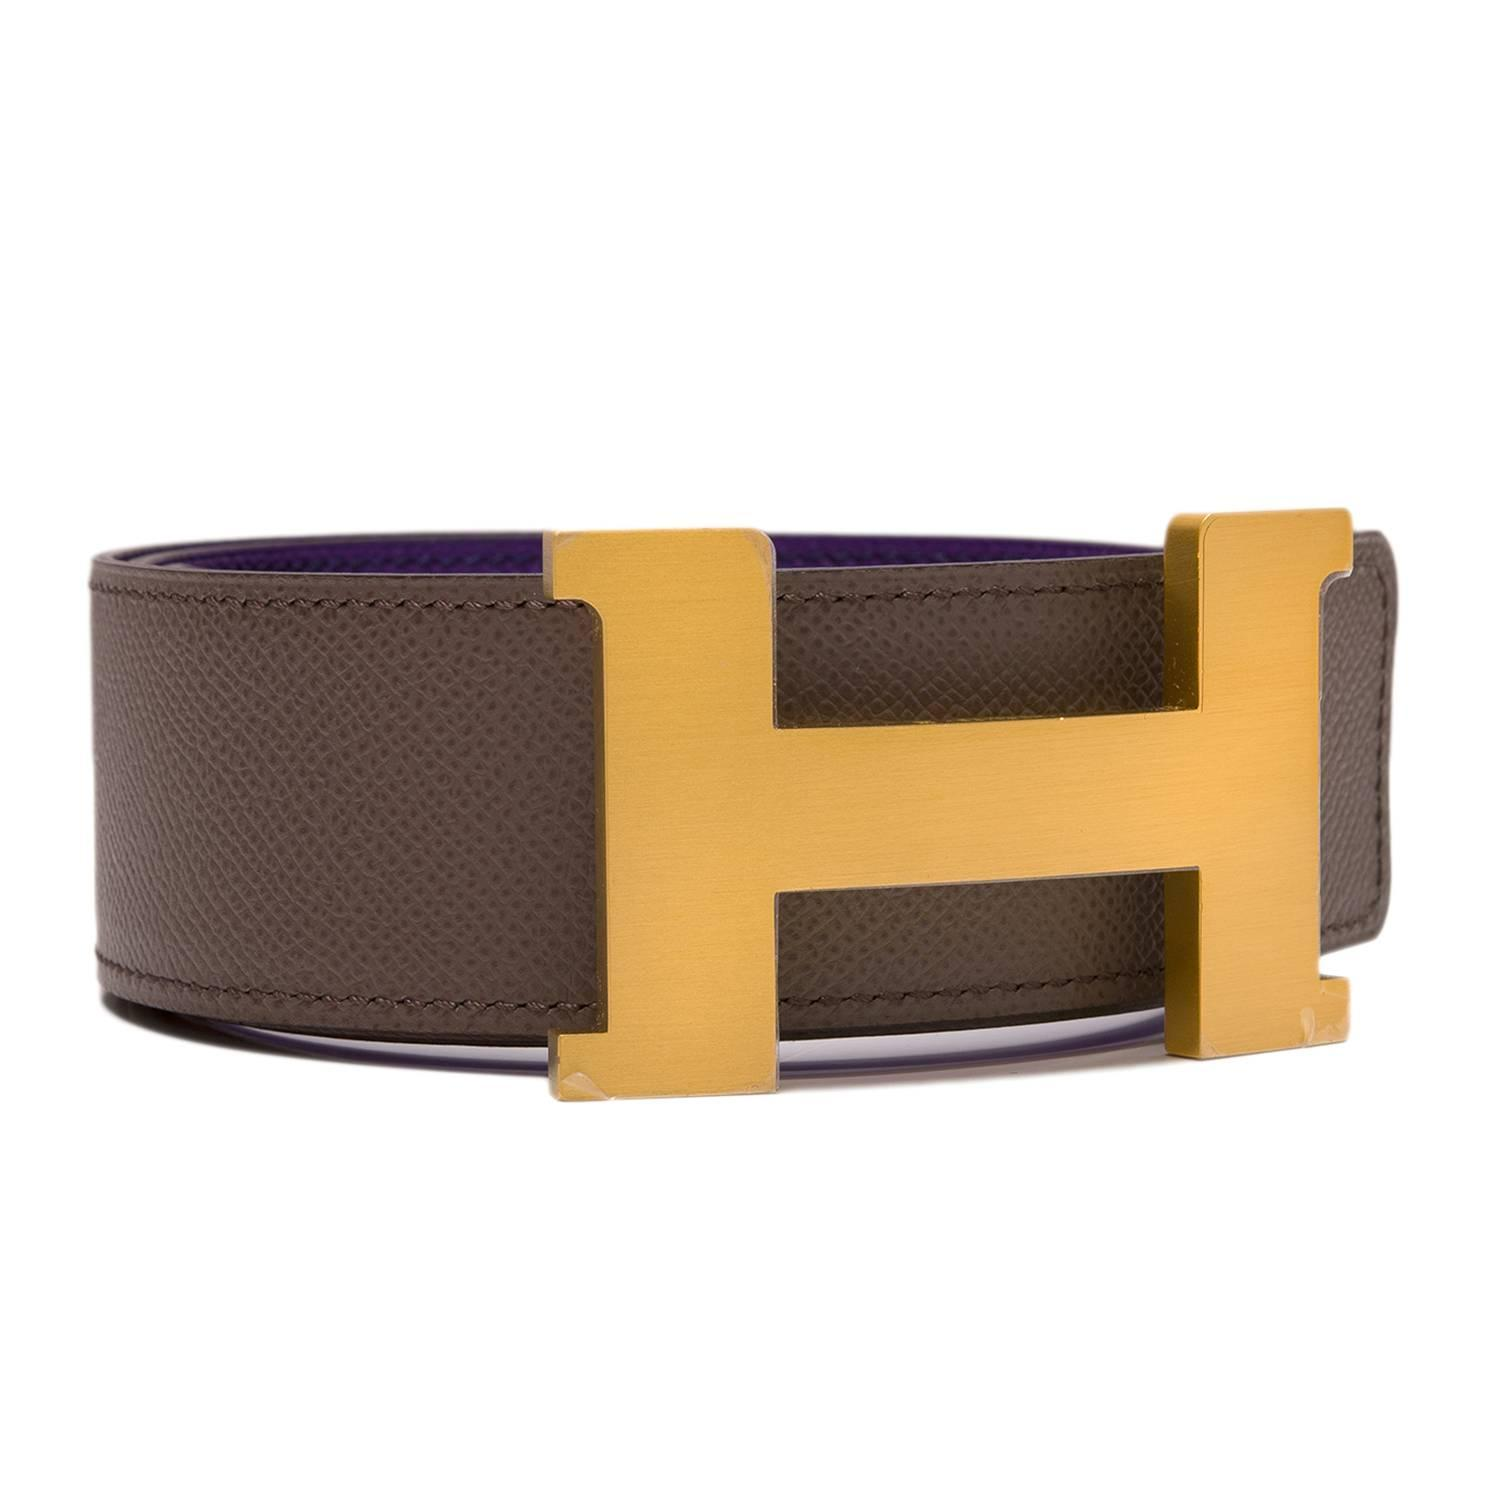 bags that look like hermes birkin - Hermes 42mm Reversible Crocus/Etain Epsom Constance H Belt Brushed ...